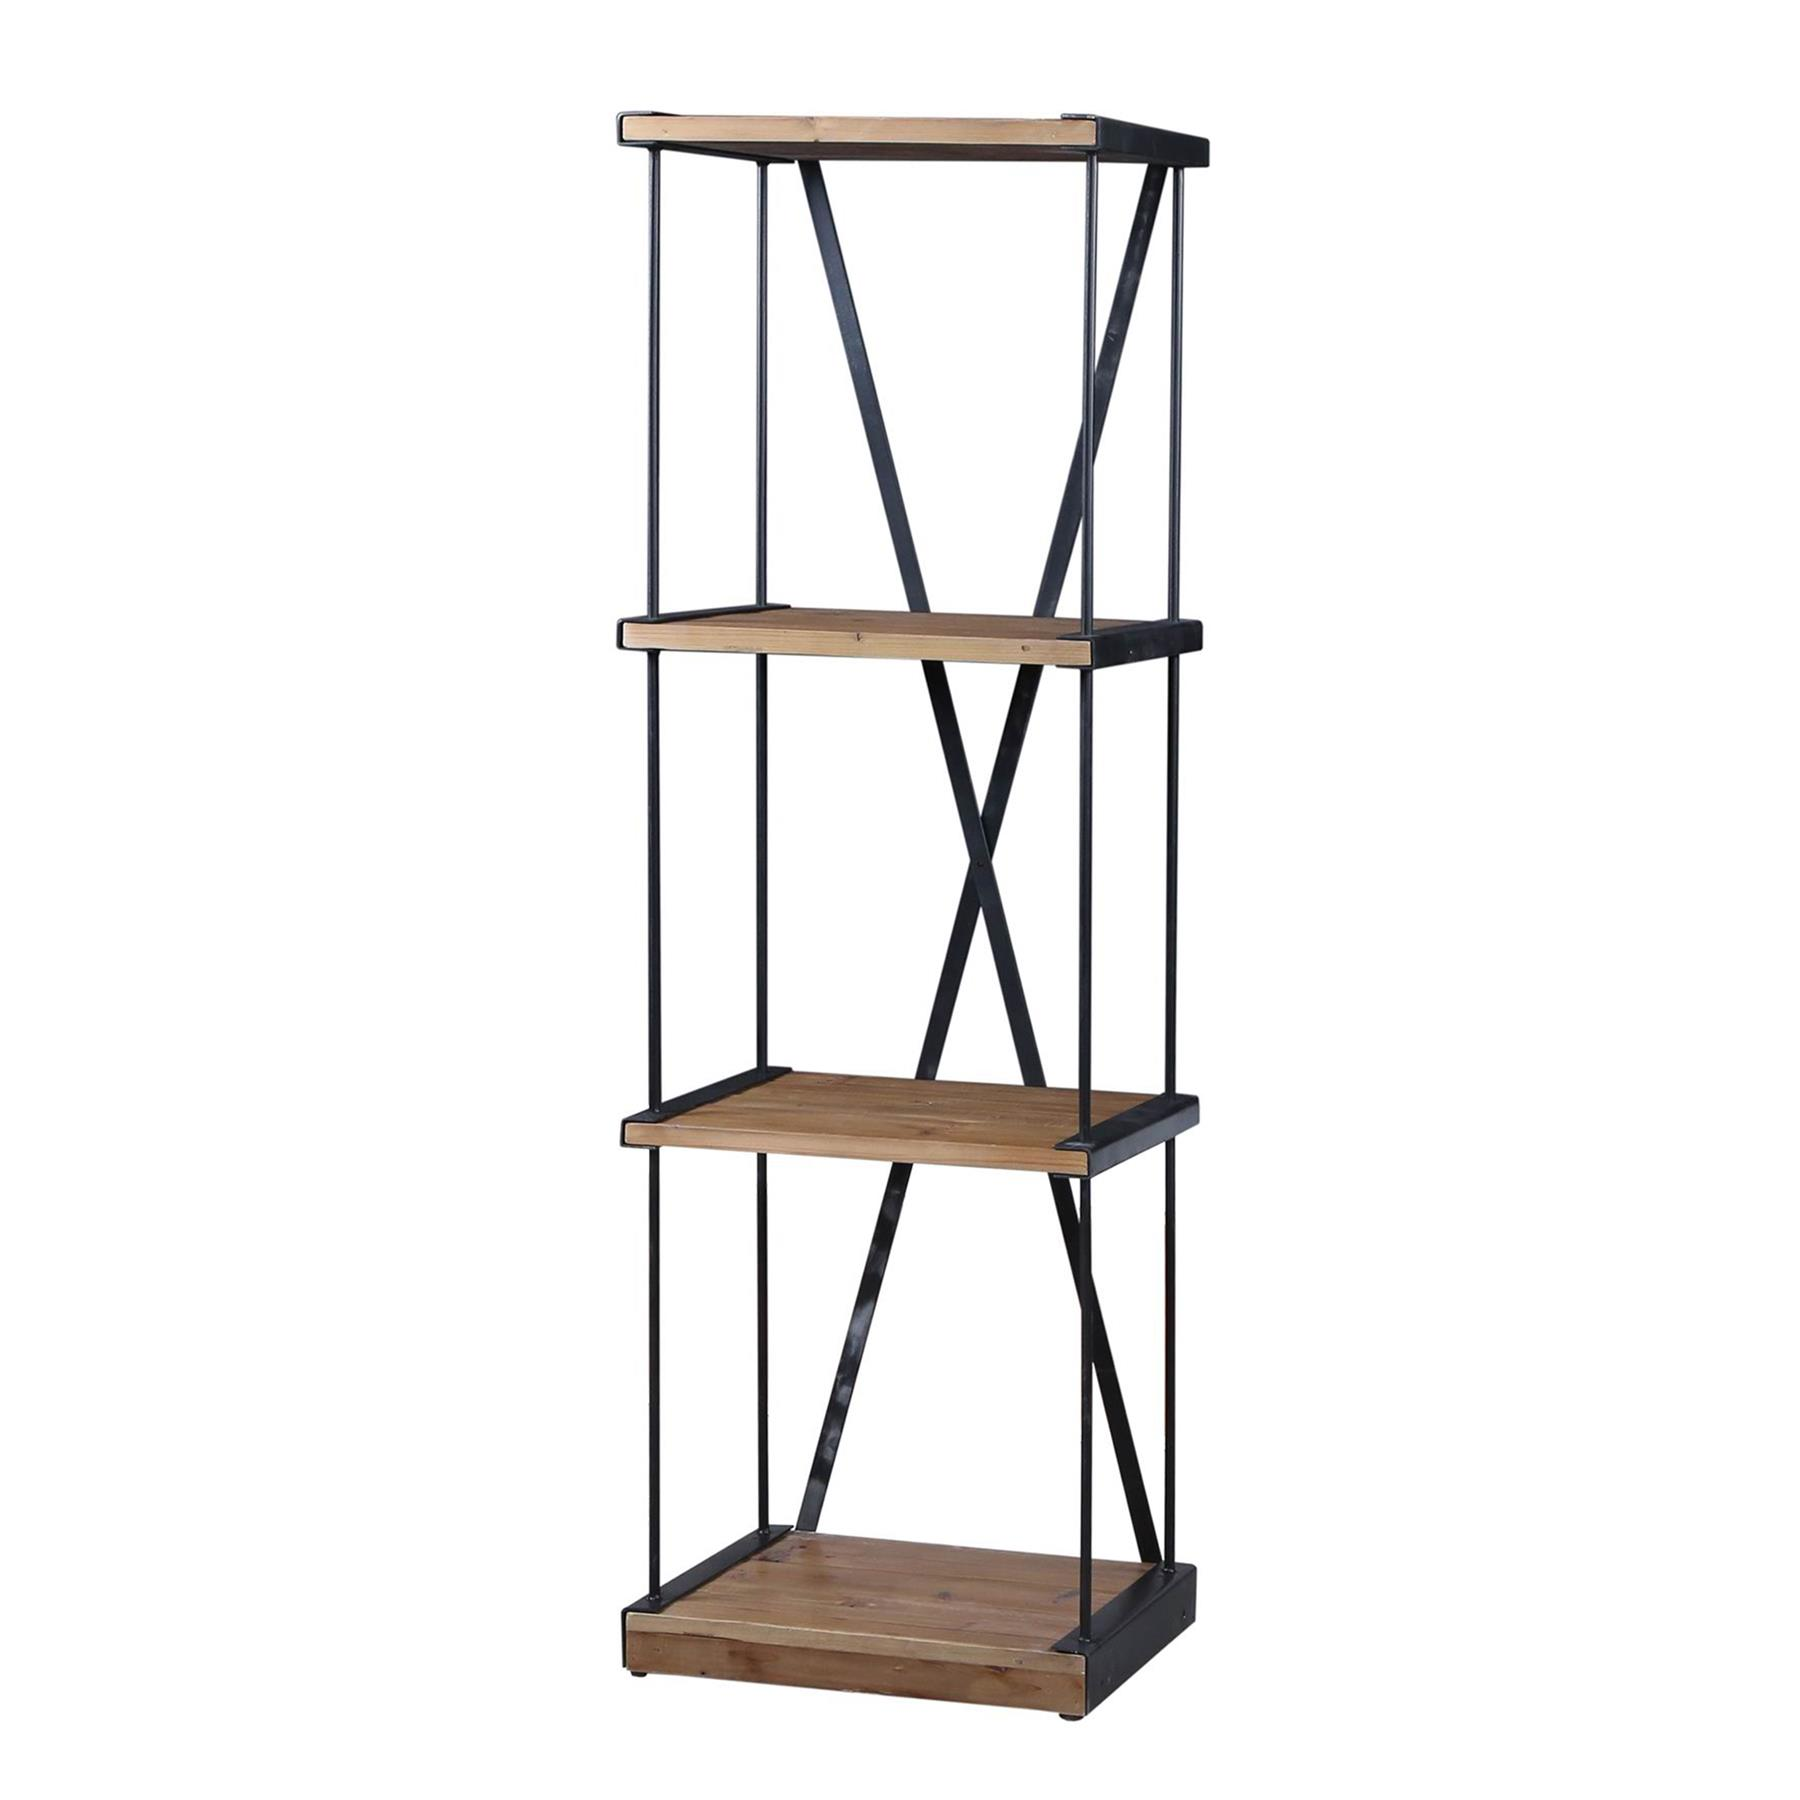 Details About Libra Book Shelf Refinery Small Iron And Elm Wooden Bookcase 160cm